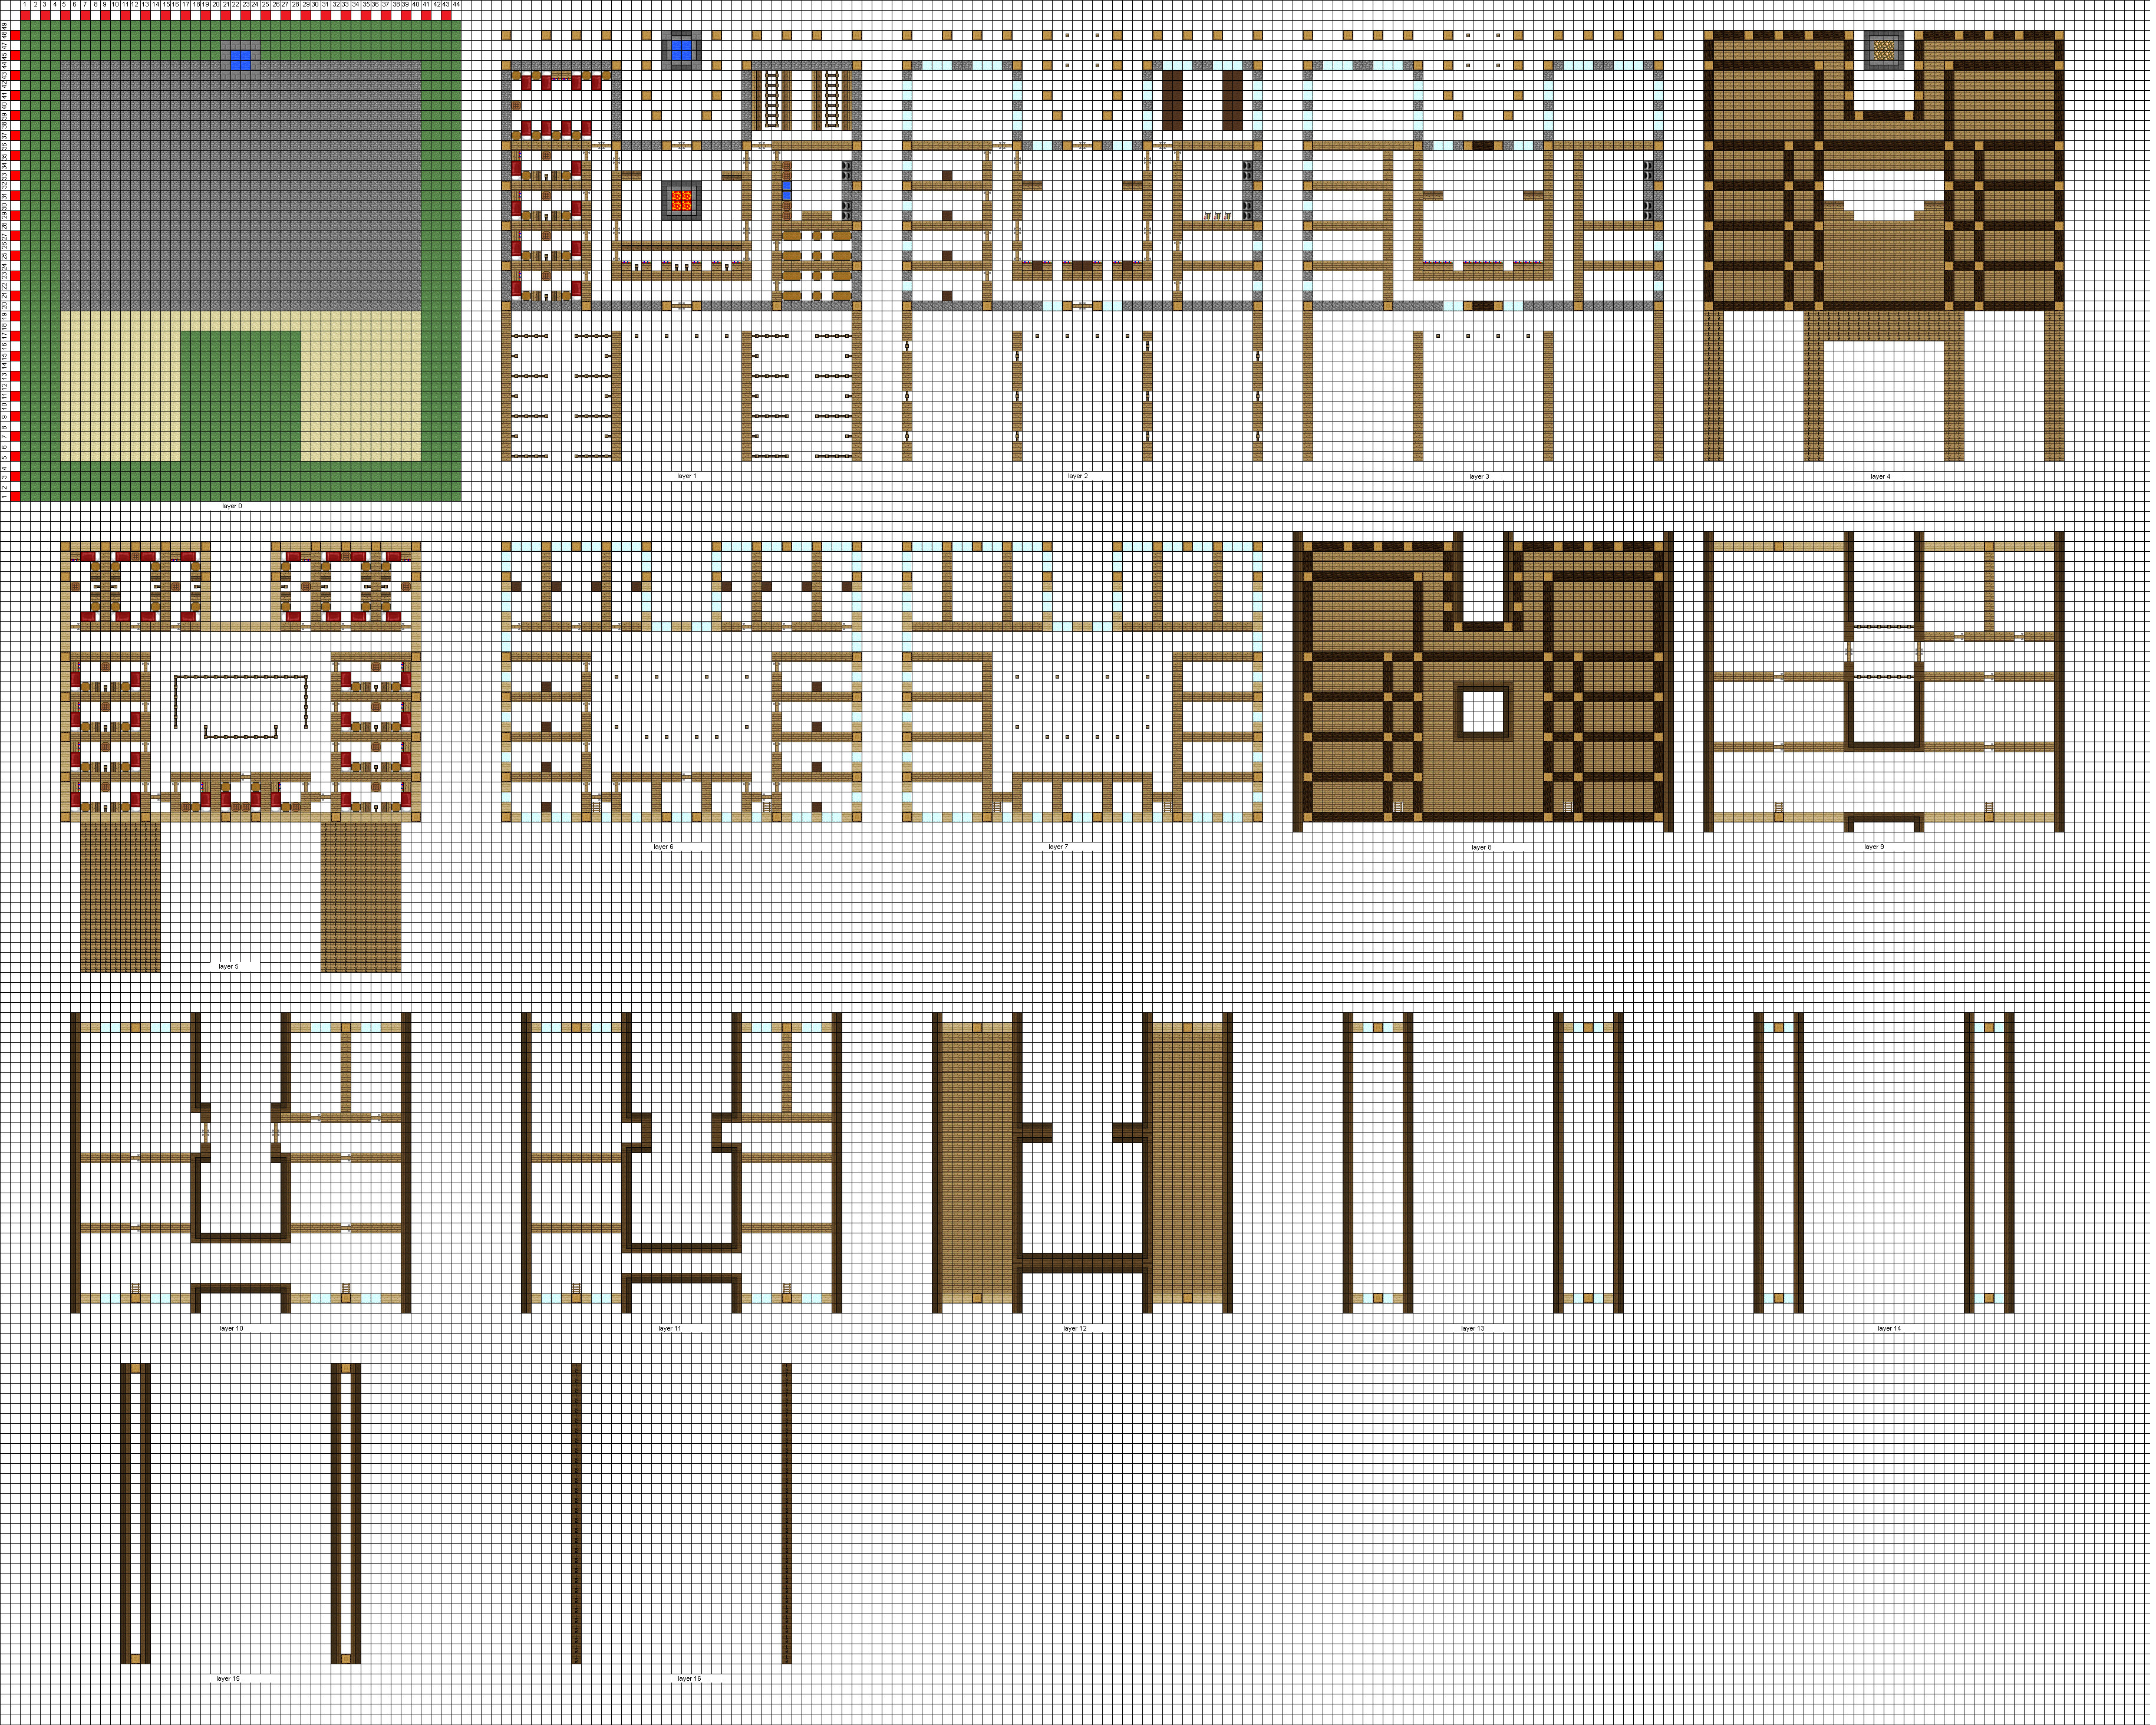 Minecraft large inn floorplans wip by coltcoyote on deviantart Large floor plans